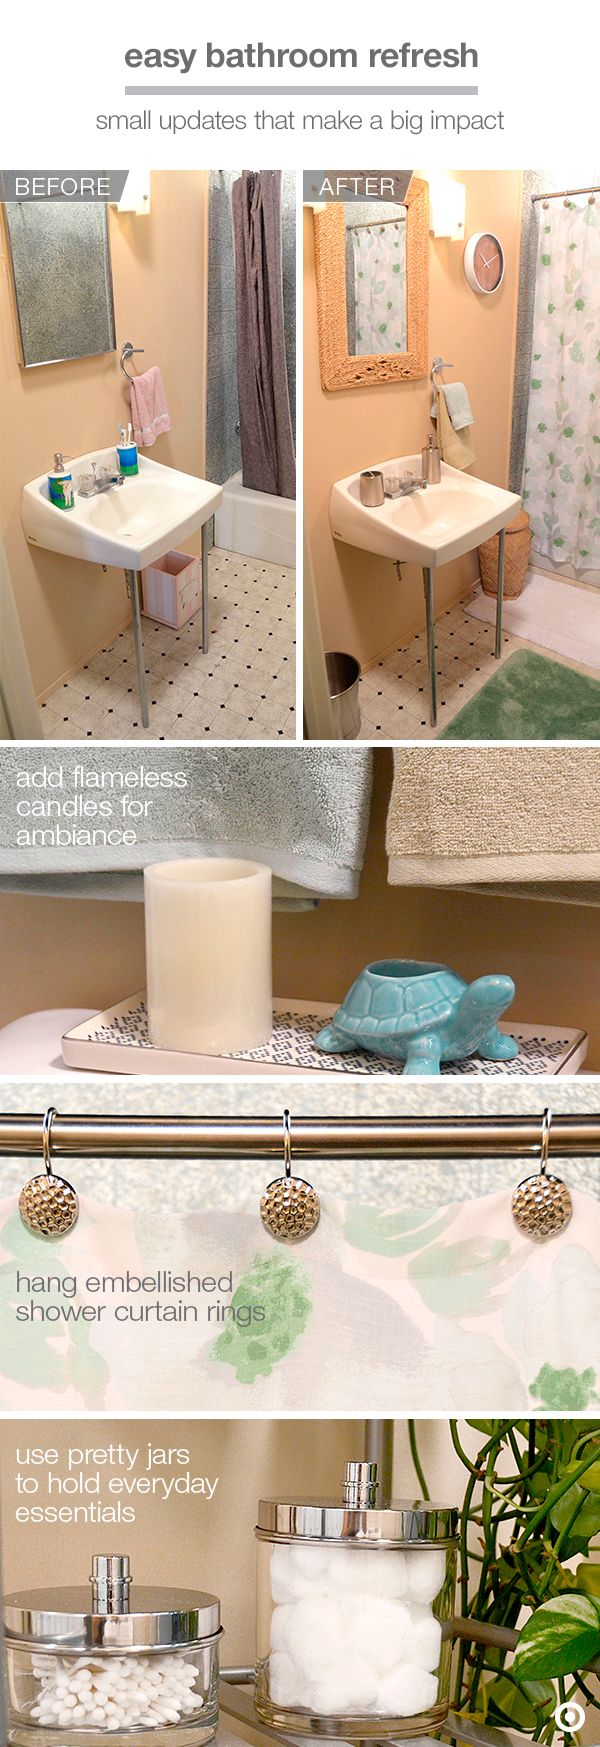 Target bathroom accessories shower curtains - Youtube Vlogger Mr Kate Turns An Old Bathroom Into An Oasis 1